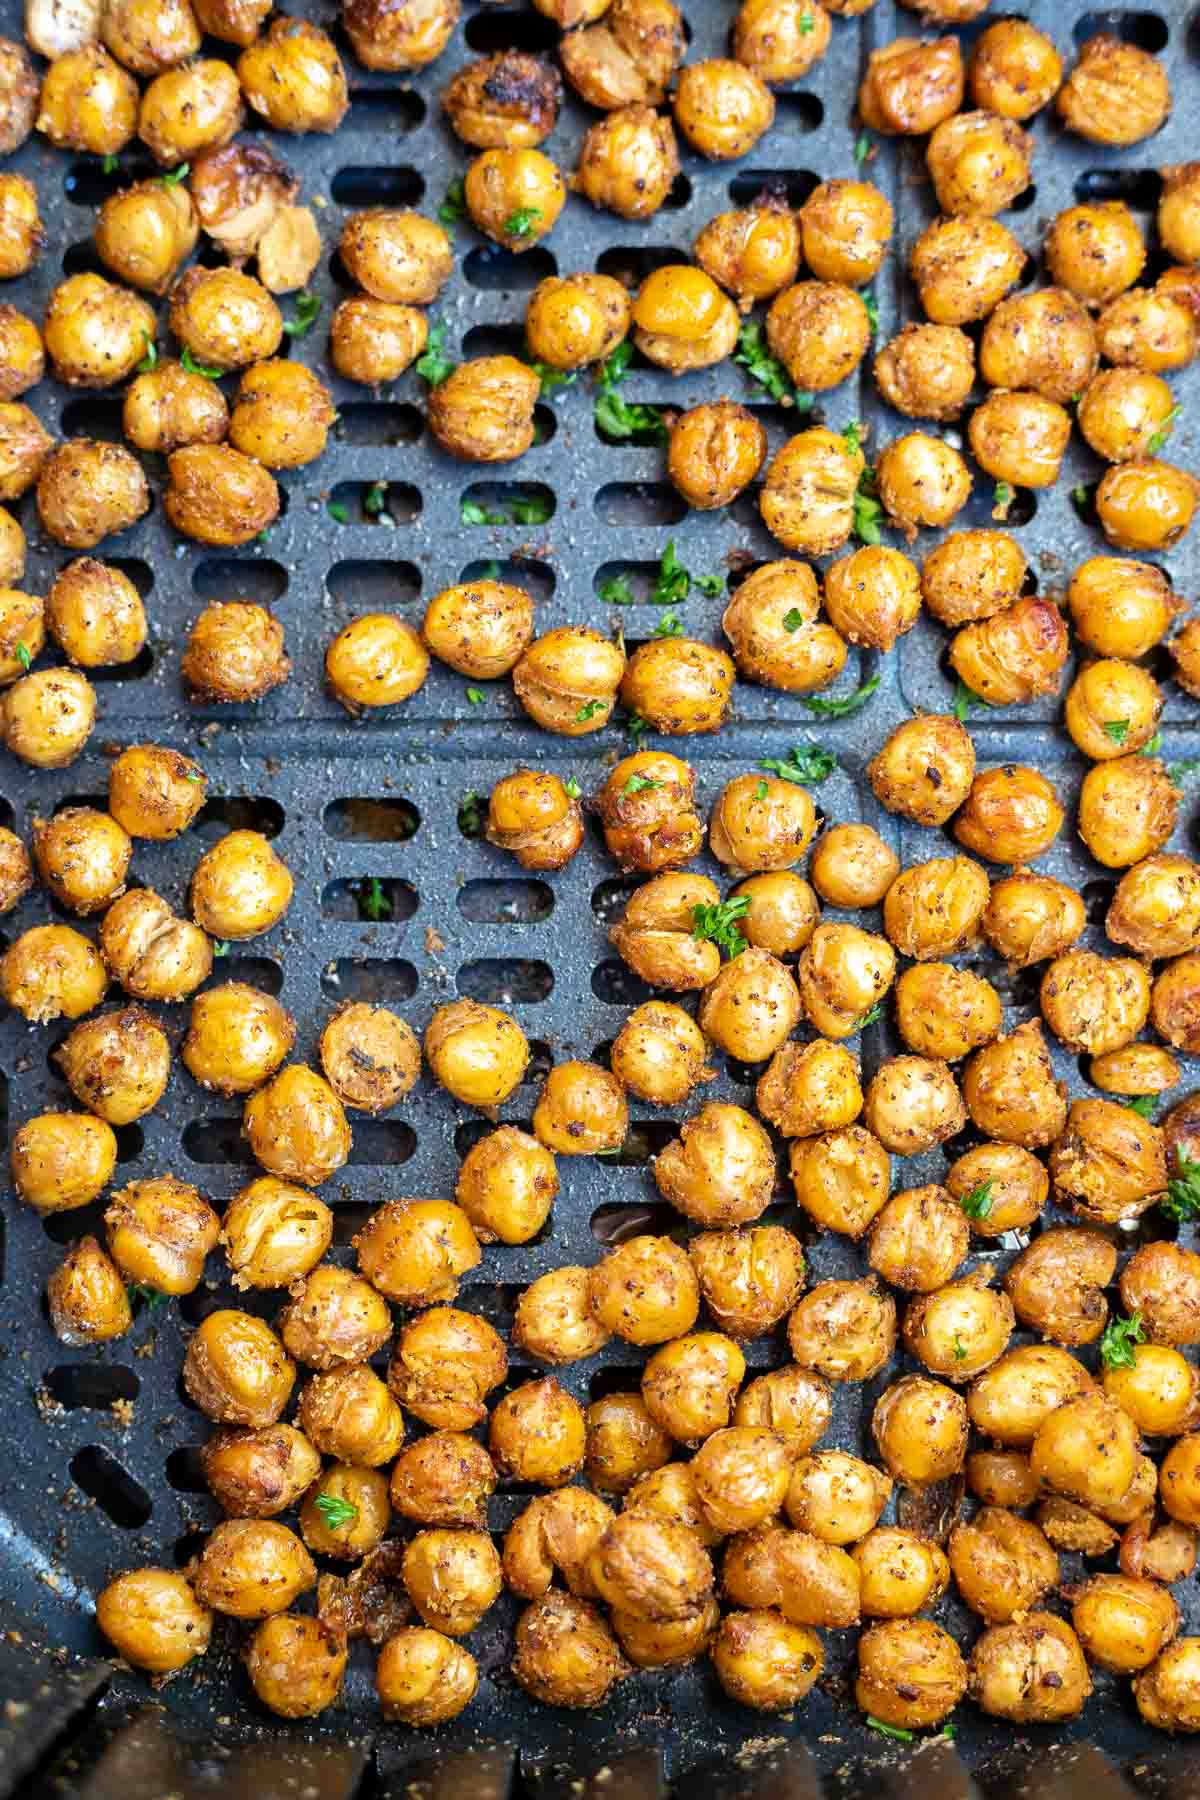 roasted chickpeas in air fryer basket